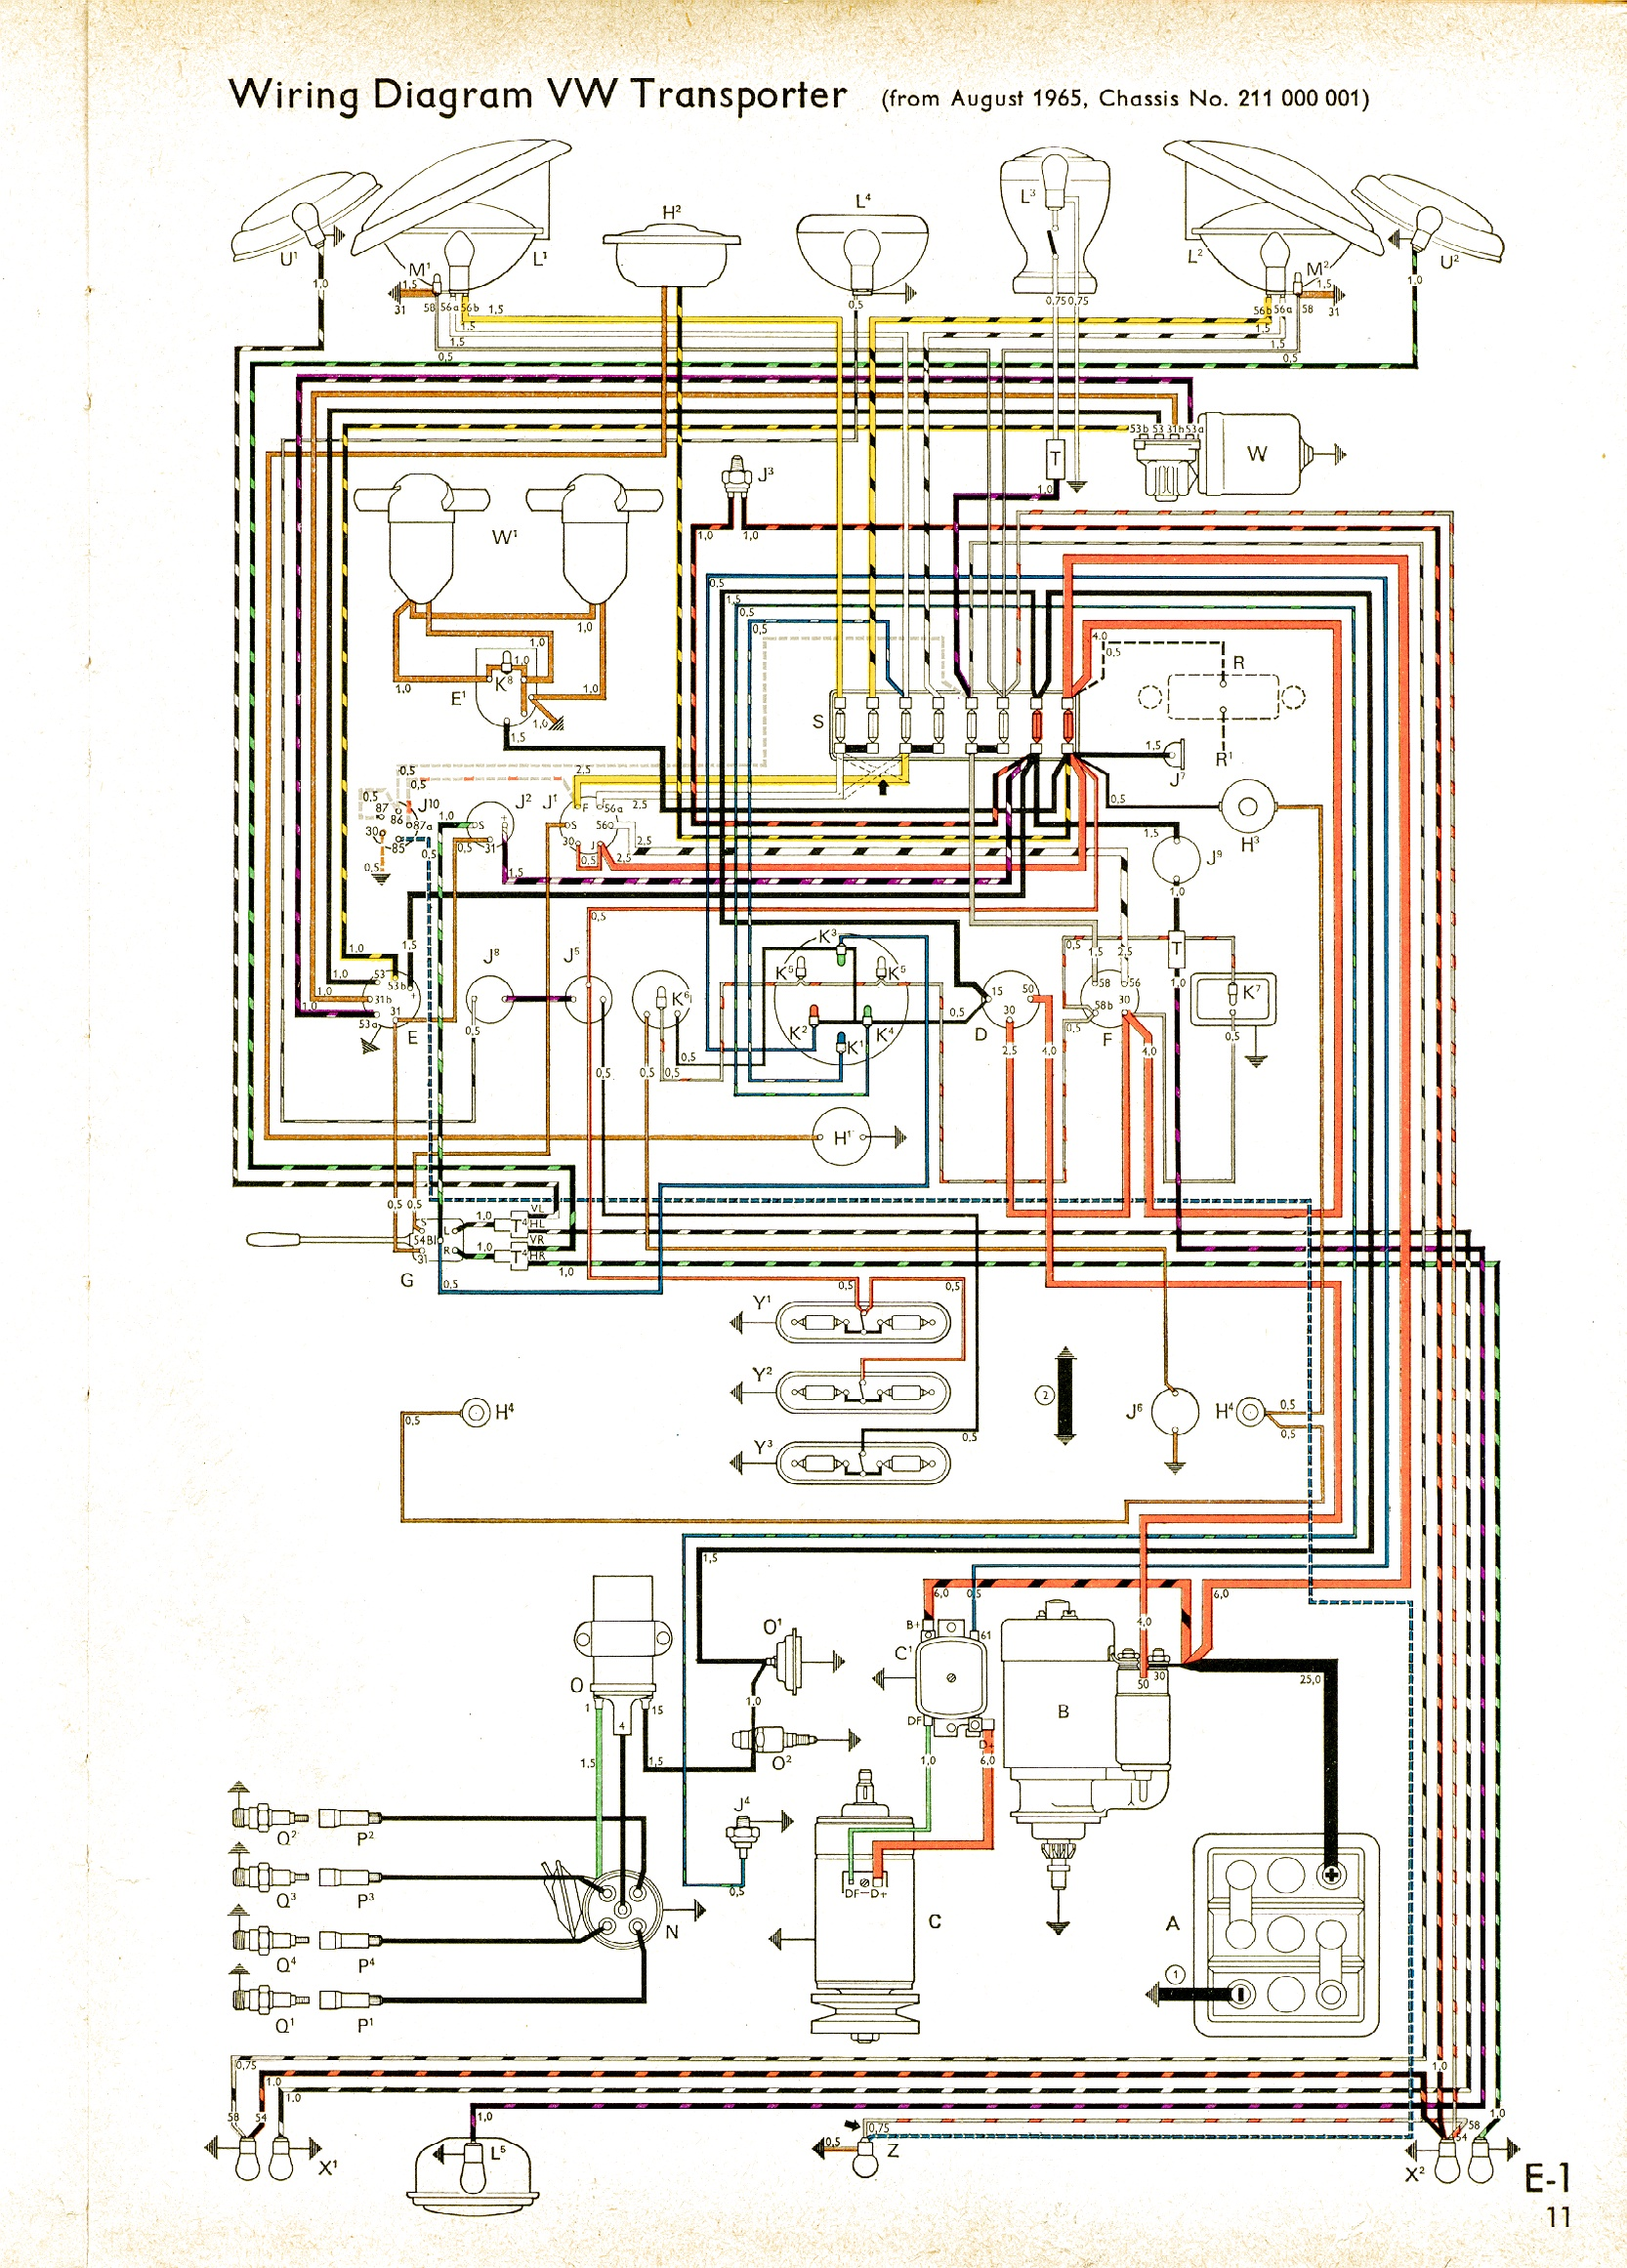 Bus Wiring Diagrams Wiring Diagram Schemes Gas Pump Diagram 1987 Volkswagen  Vanagon Wiring Diagram